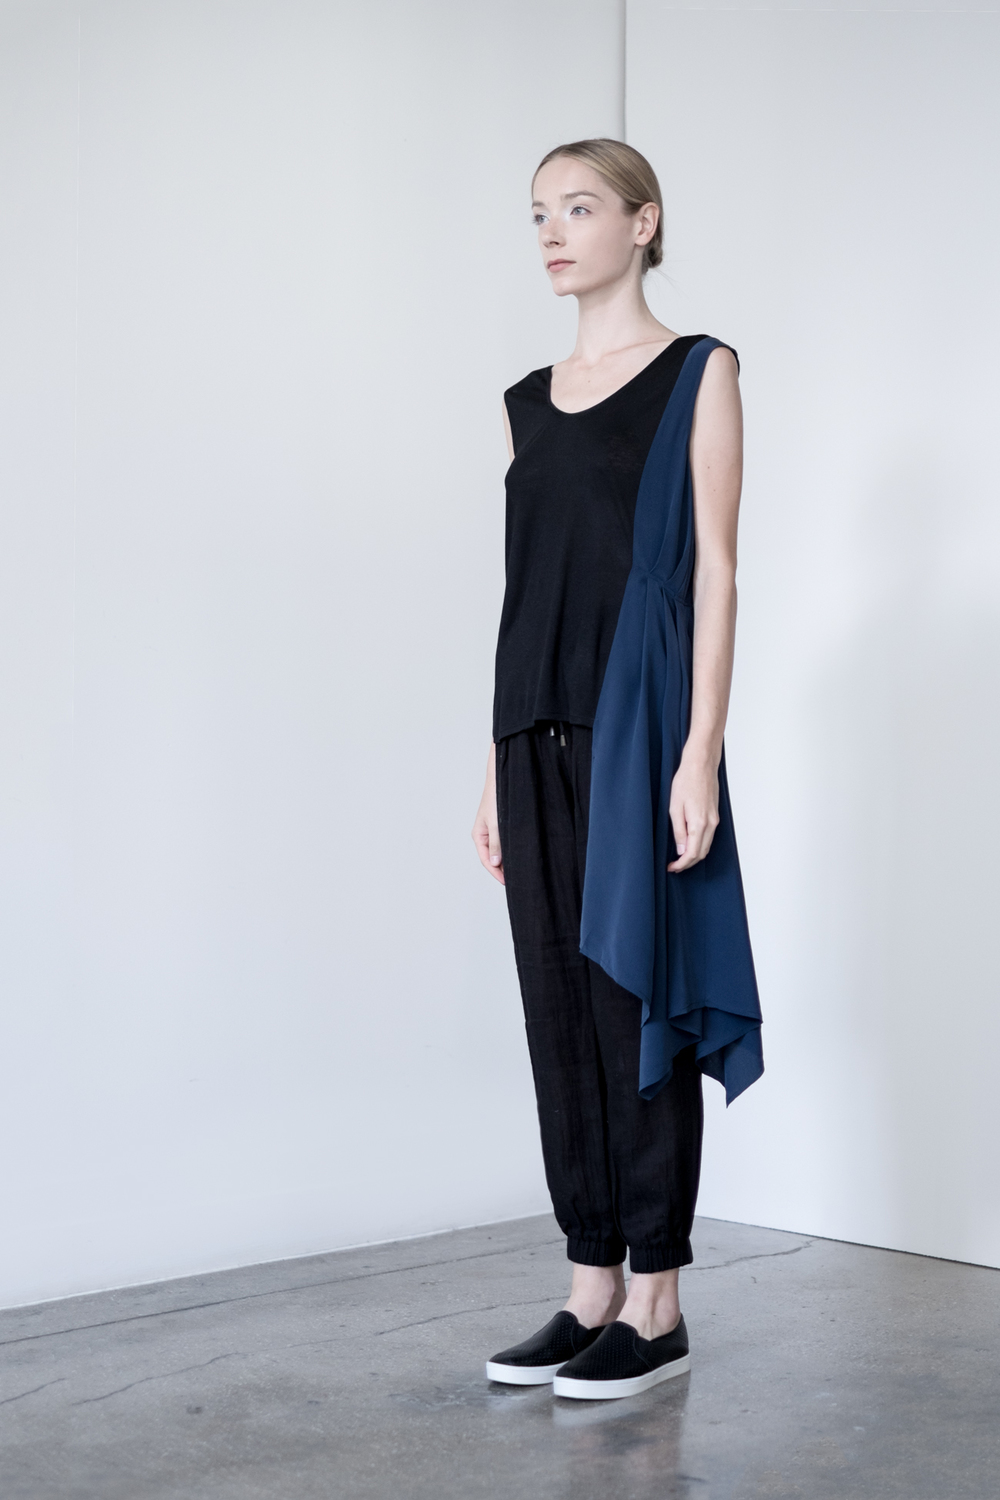 LOOK 44   TOP:   2283  / Noir   -     Sleeveless pullover with side pleated draping.   BOTTOM:   2290  / Noir  -   Jogger pants in 100% Cotton woven dbl. layer gauze.